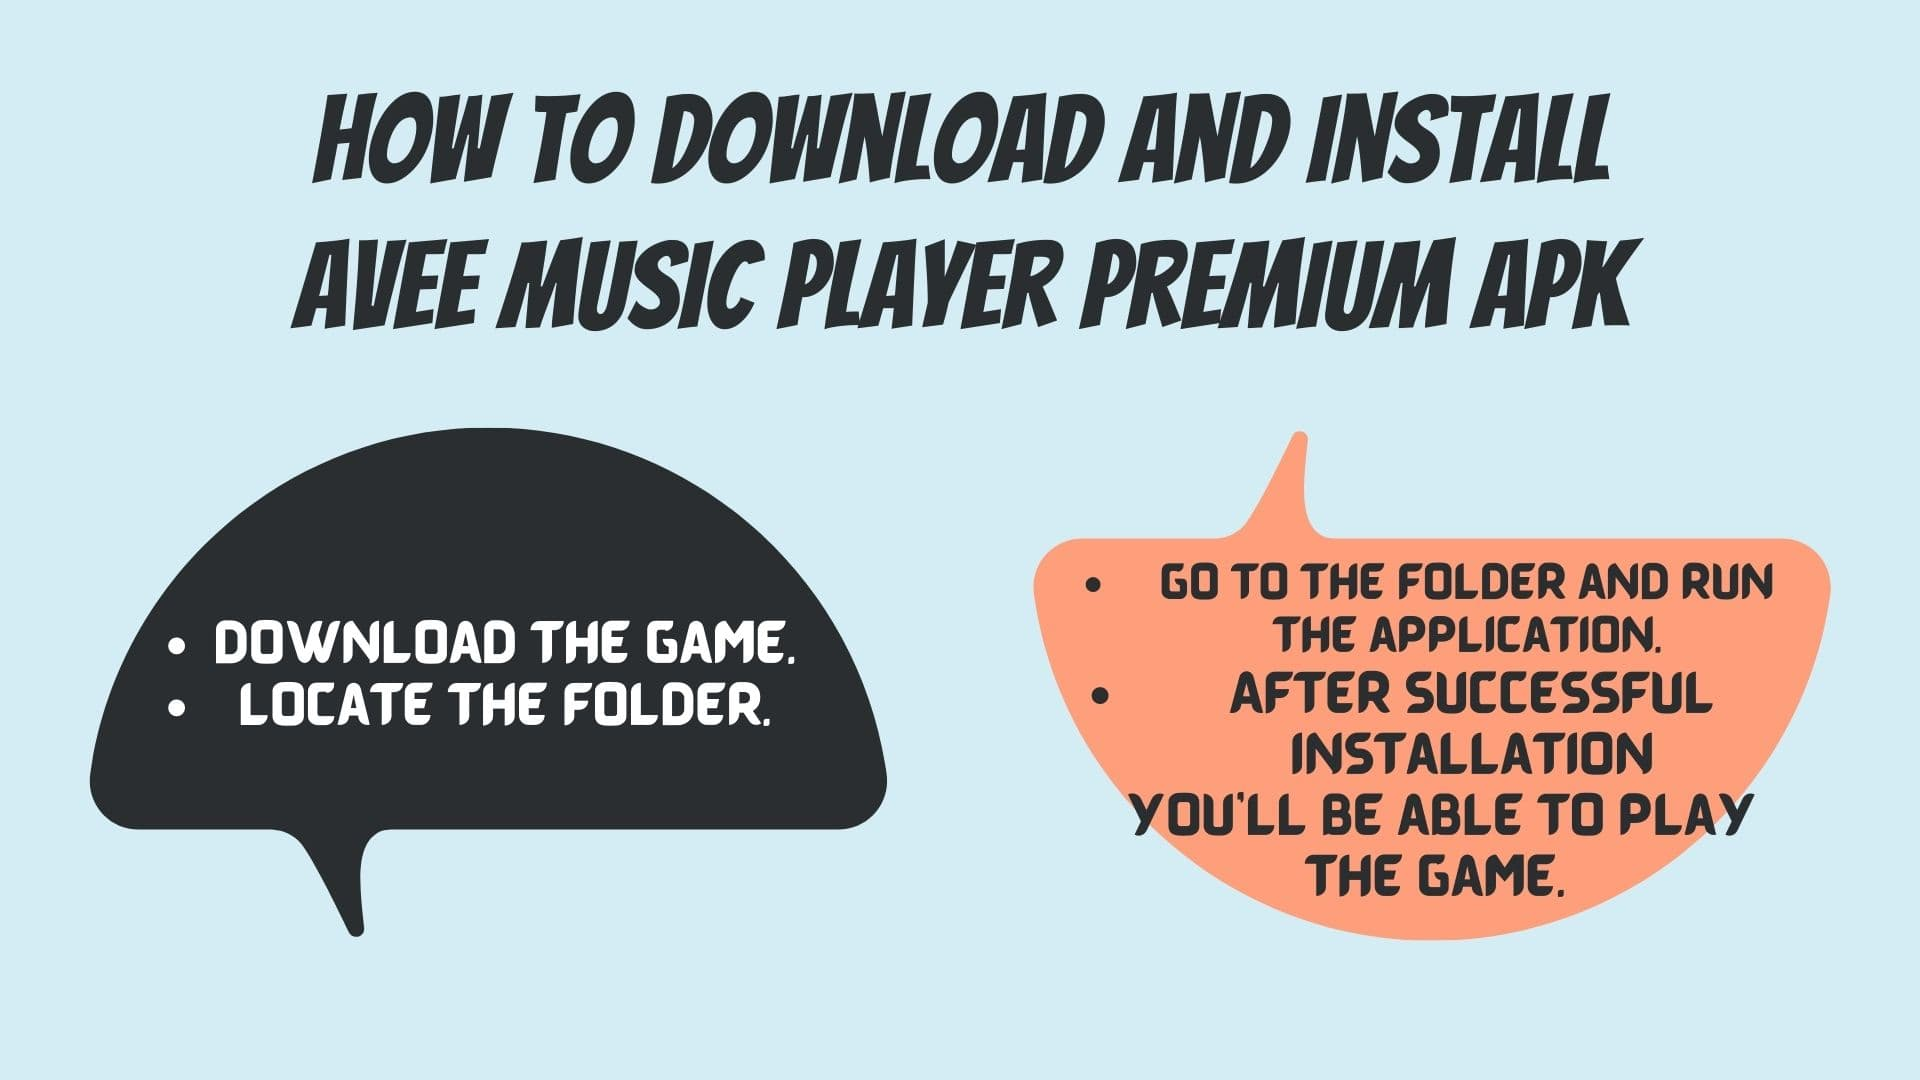 How to Download And install Avee Music Player Premium apk